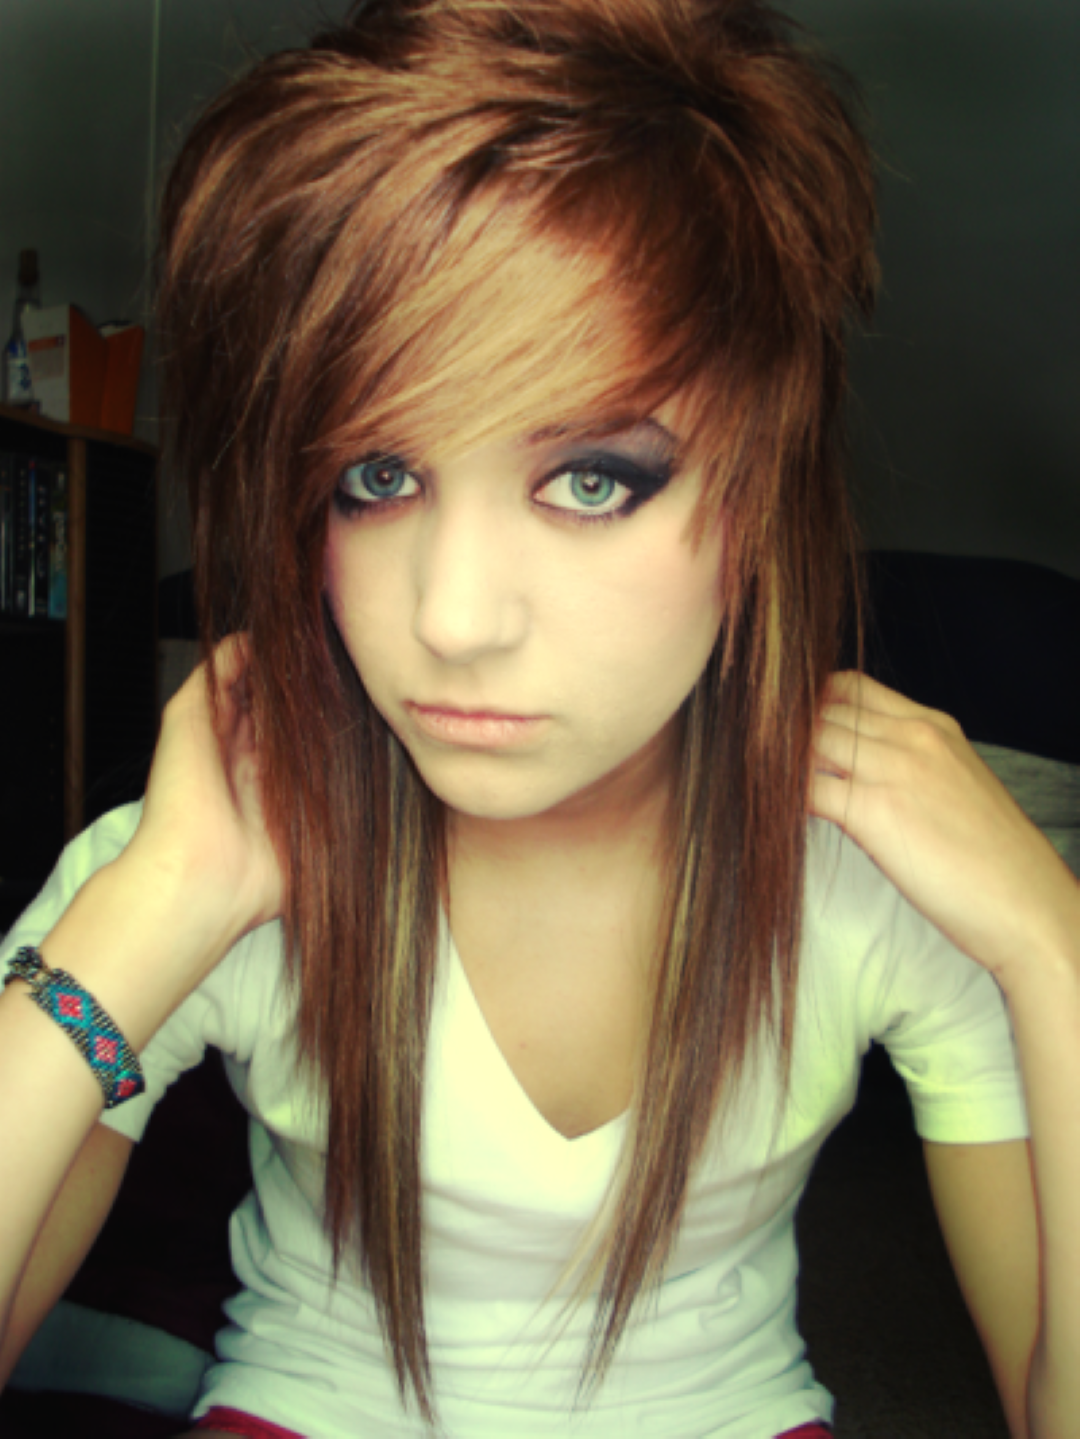 Emo Hairstyles For Girls hair Pinterest Hair Hair styles and